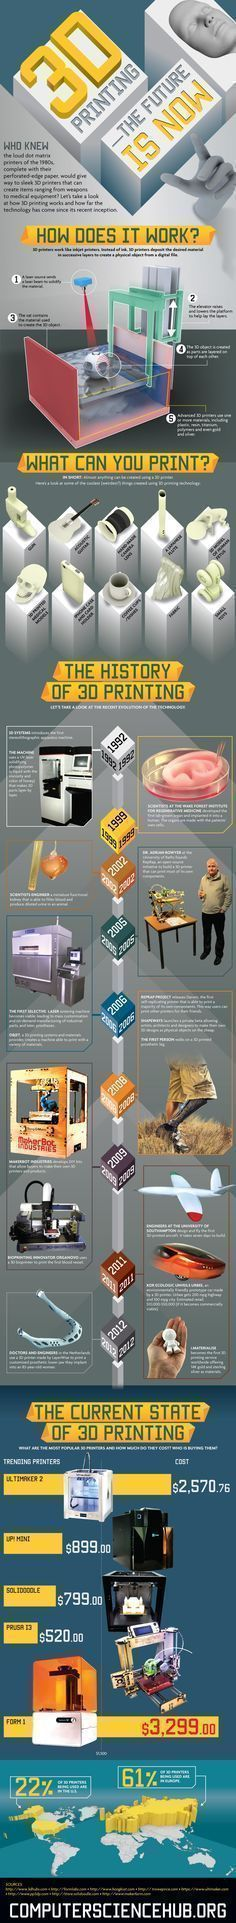 INFOGRAPHIC: 3D Printing: The Future is Now #3dprintingbusiness #3dprintinginfographic #3dprintingprojects